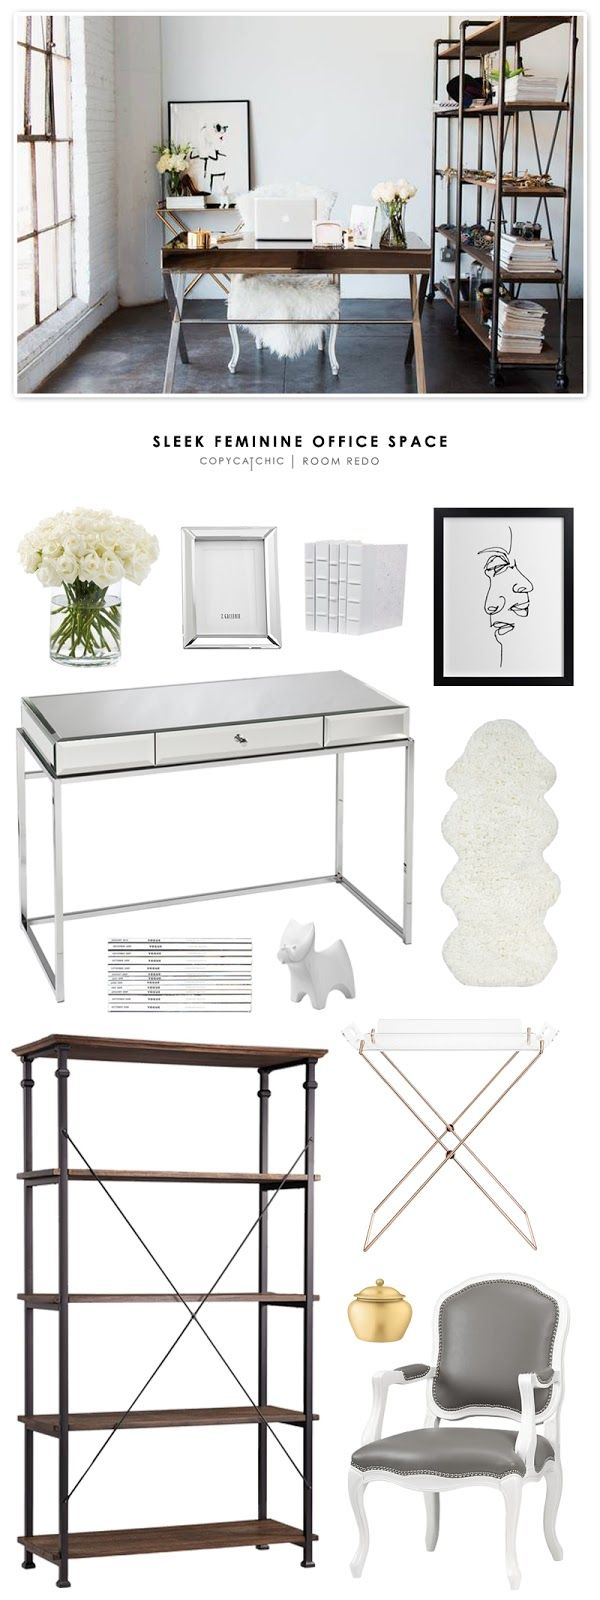 A sleek, feminine office featured in Domino Magazine and recreated for less by Copy Cat Chic. by @audreycdyer